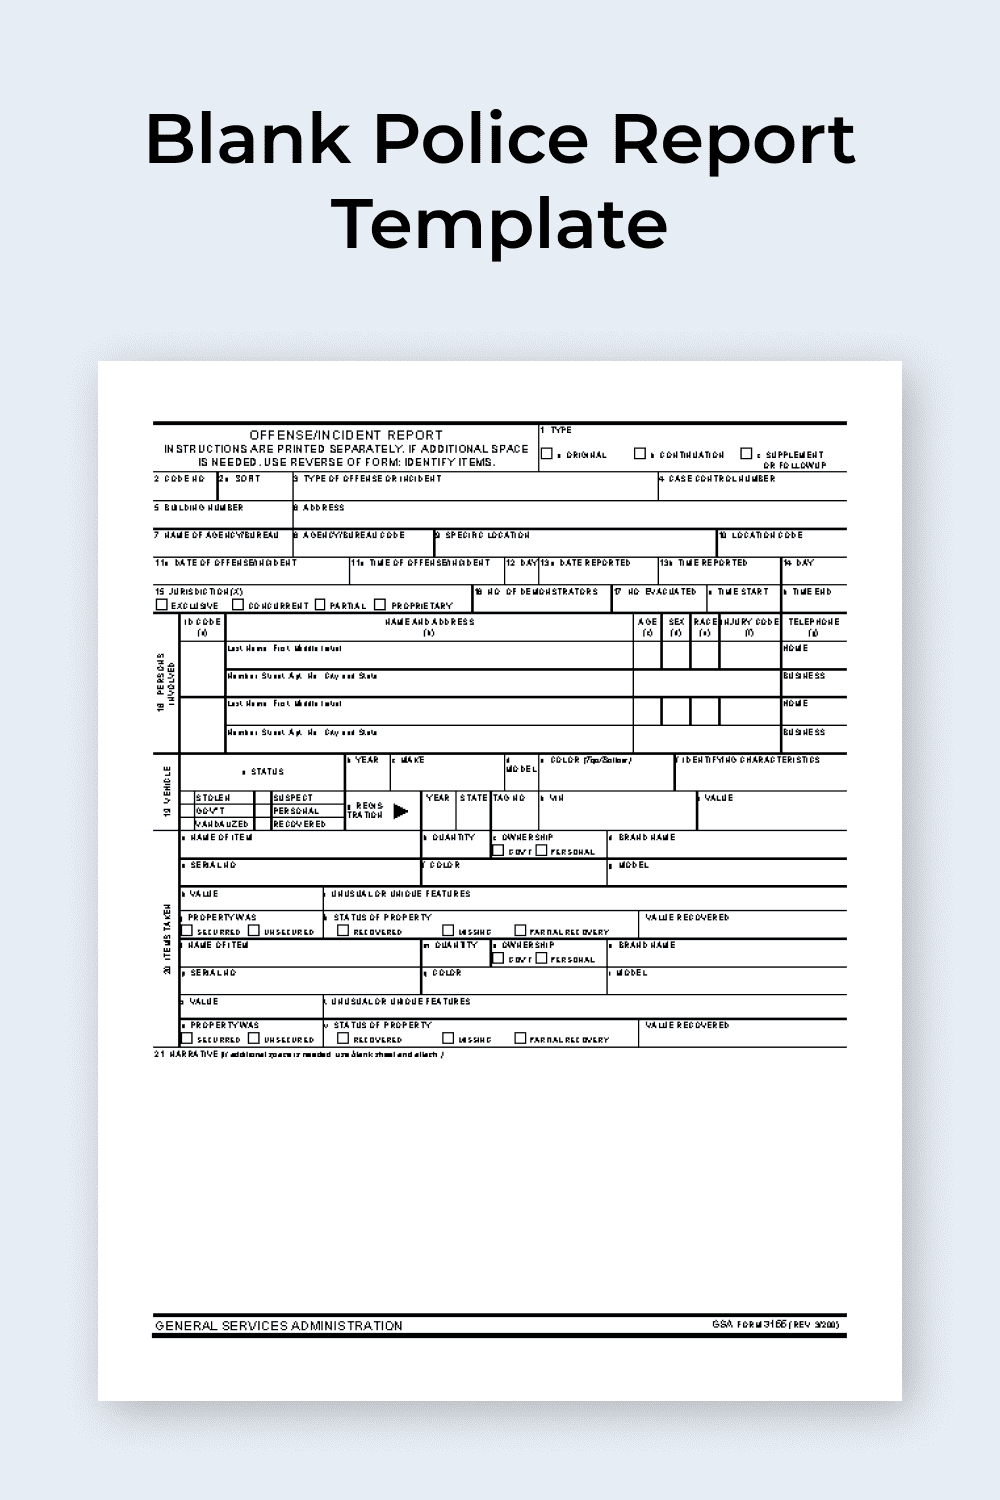 Blank Police Report Template.